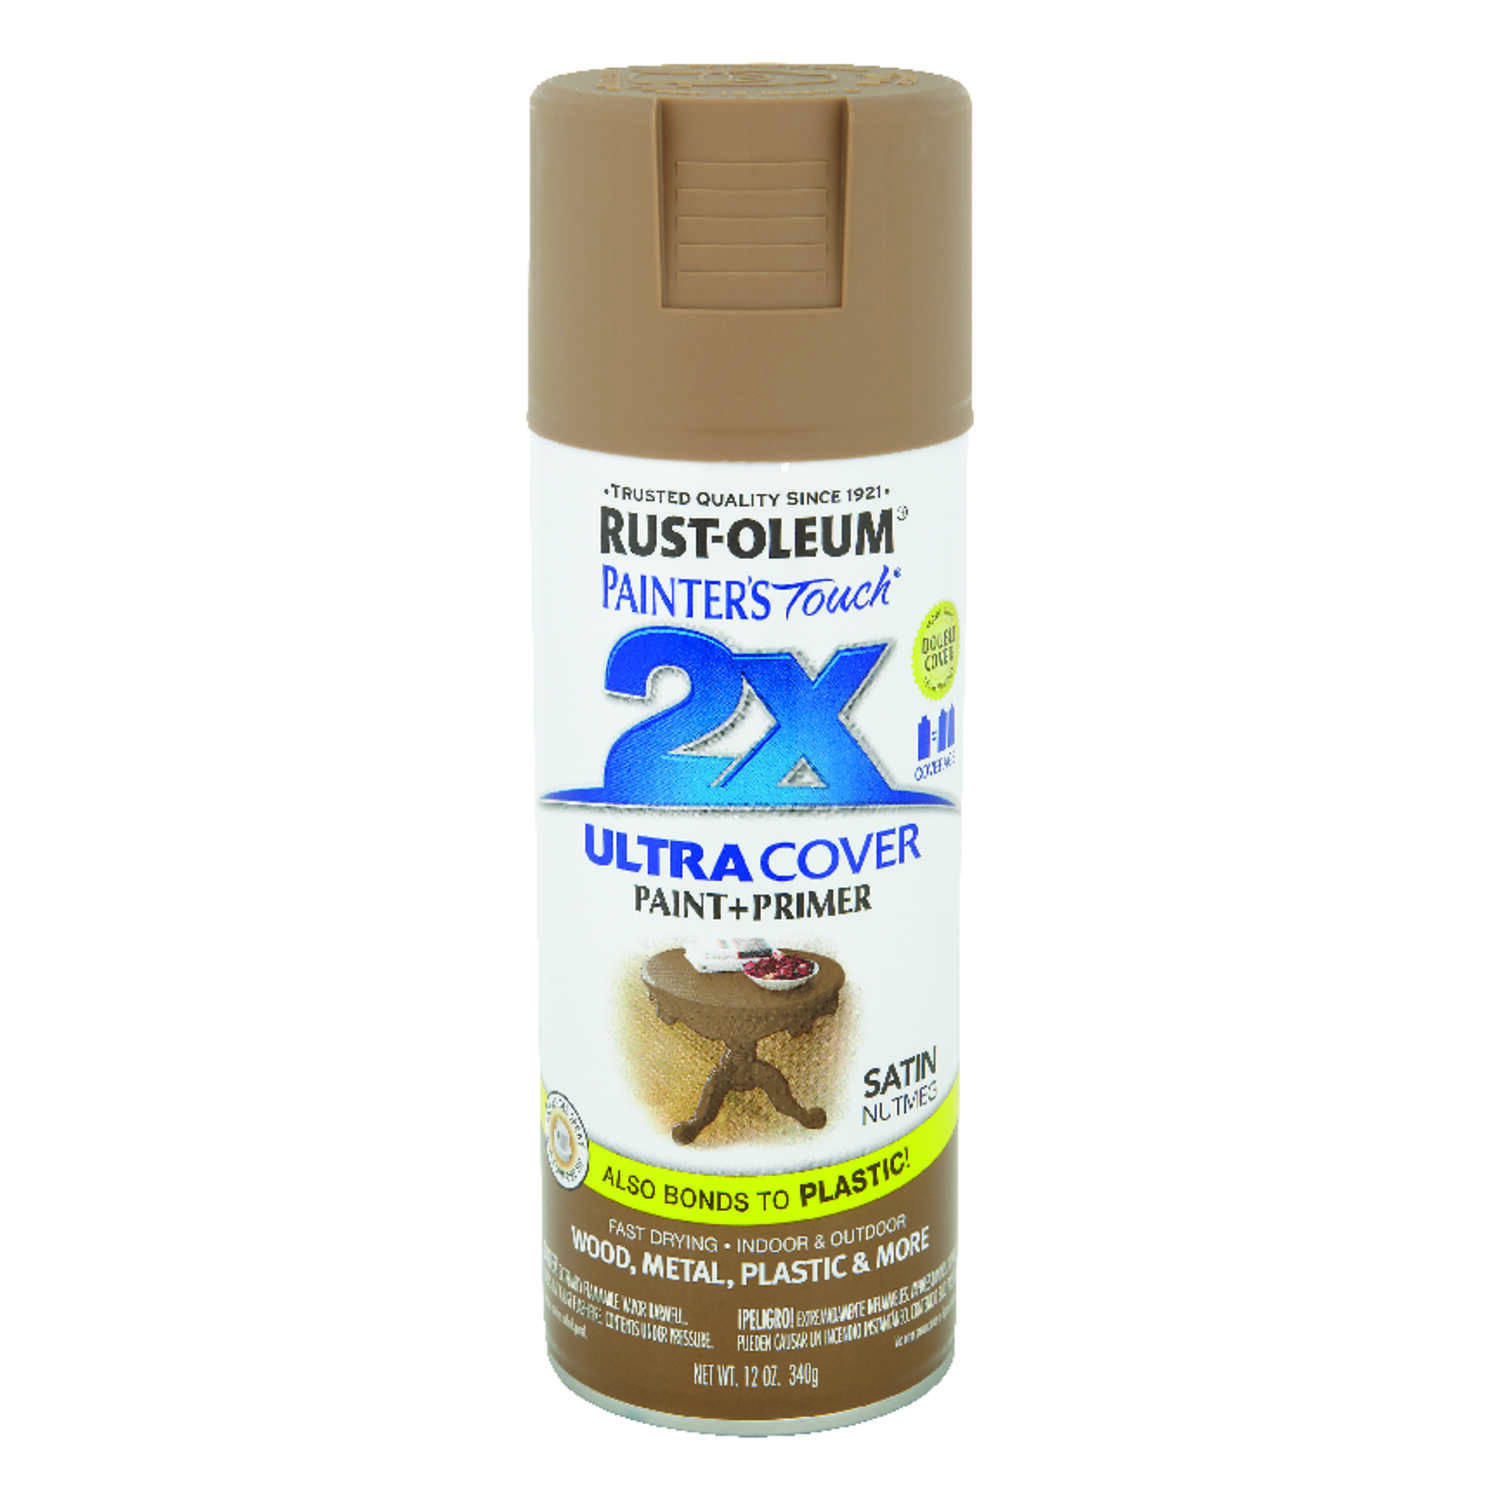 Rust-Oleum  Painter's Touch Ultra Cover  Satin  Nutmeg  12 oz. Spray Paint